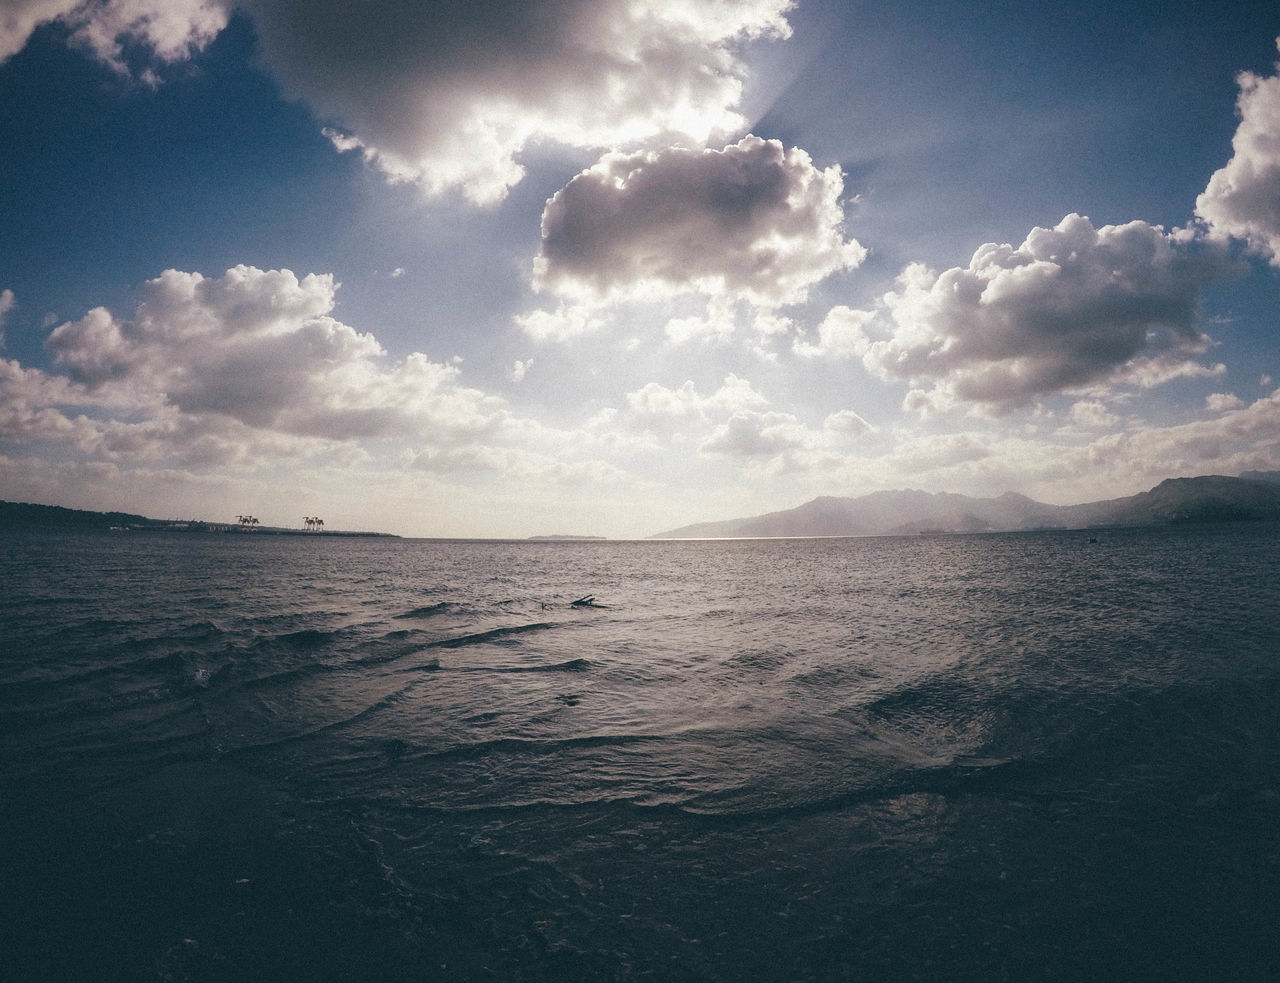 sea, sky, beauty in nature, tranquility, water, scenics, tranquil scene, cloud - sky, nature, no people, rippled, outdoors, horizon over water, day